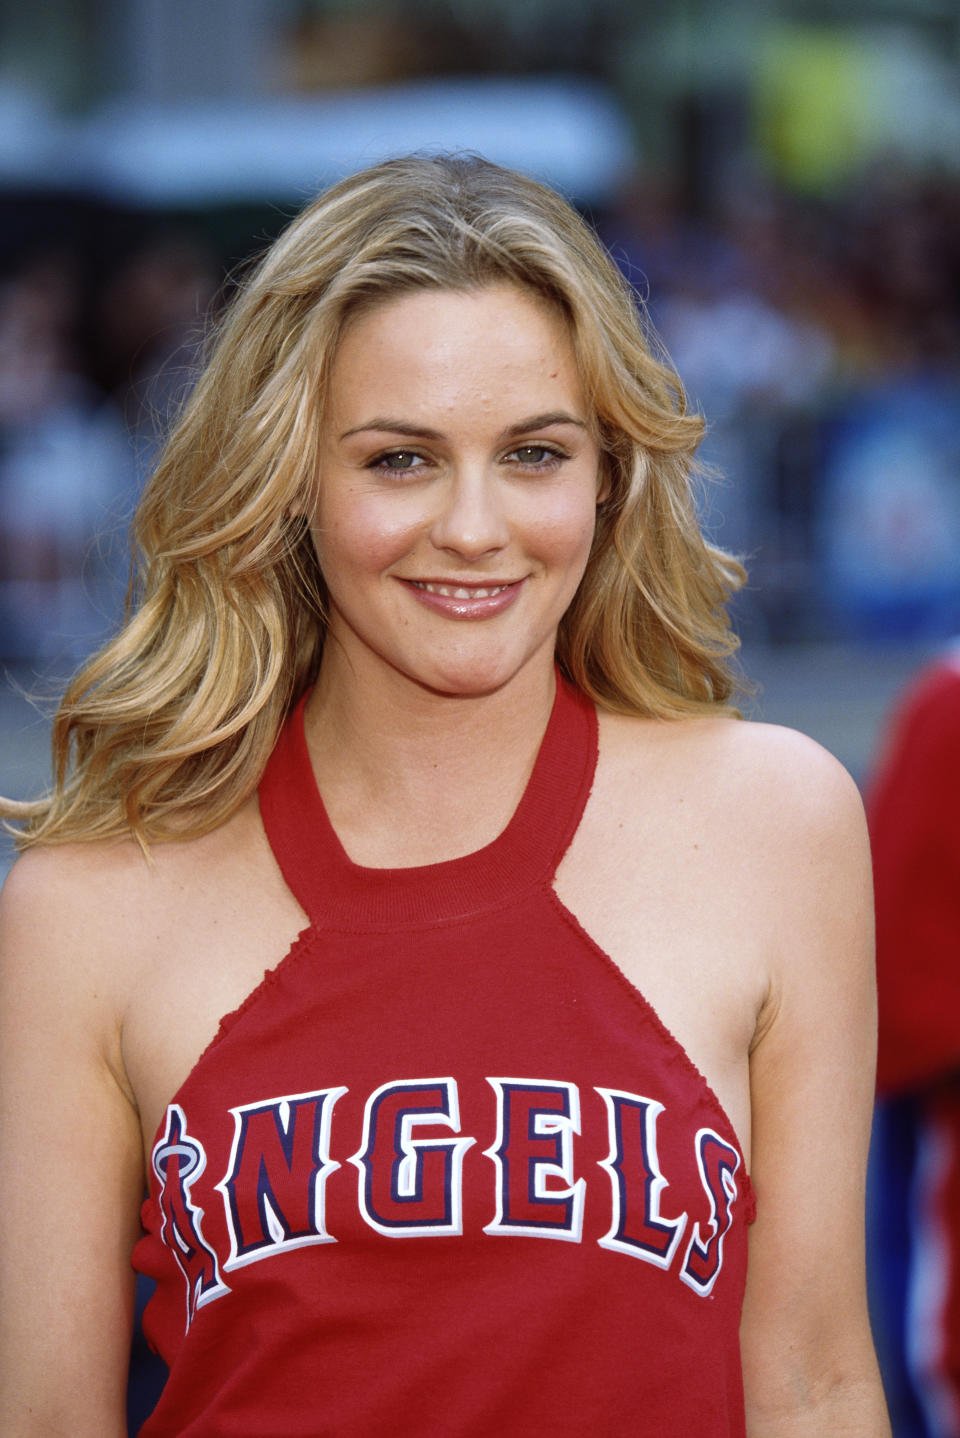 Alicia Silverstone (Photo by Kurt Krieger/Corbis via Getty Images)